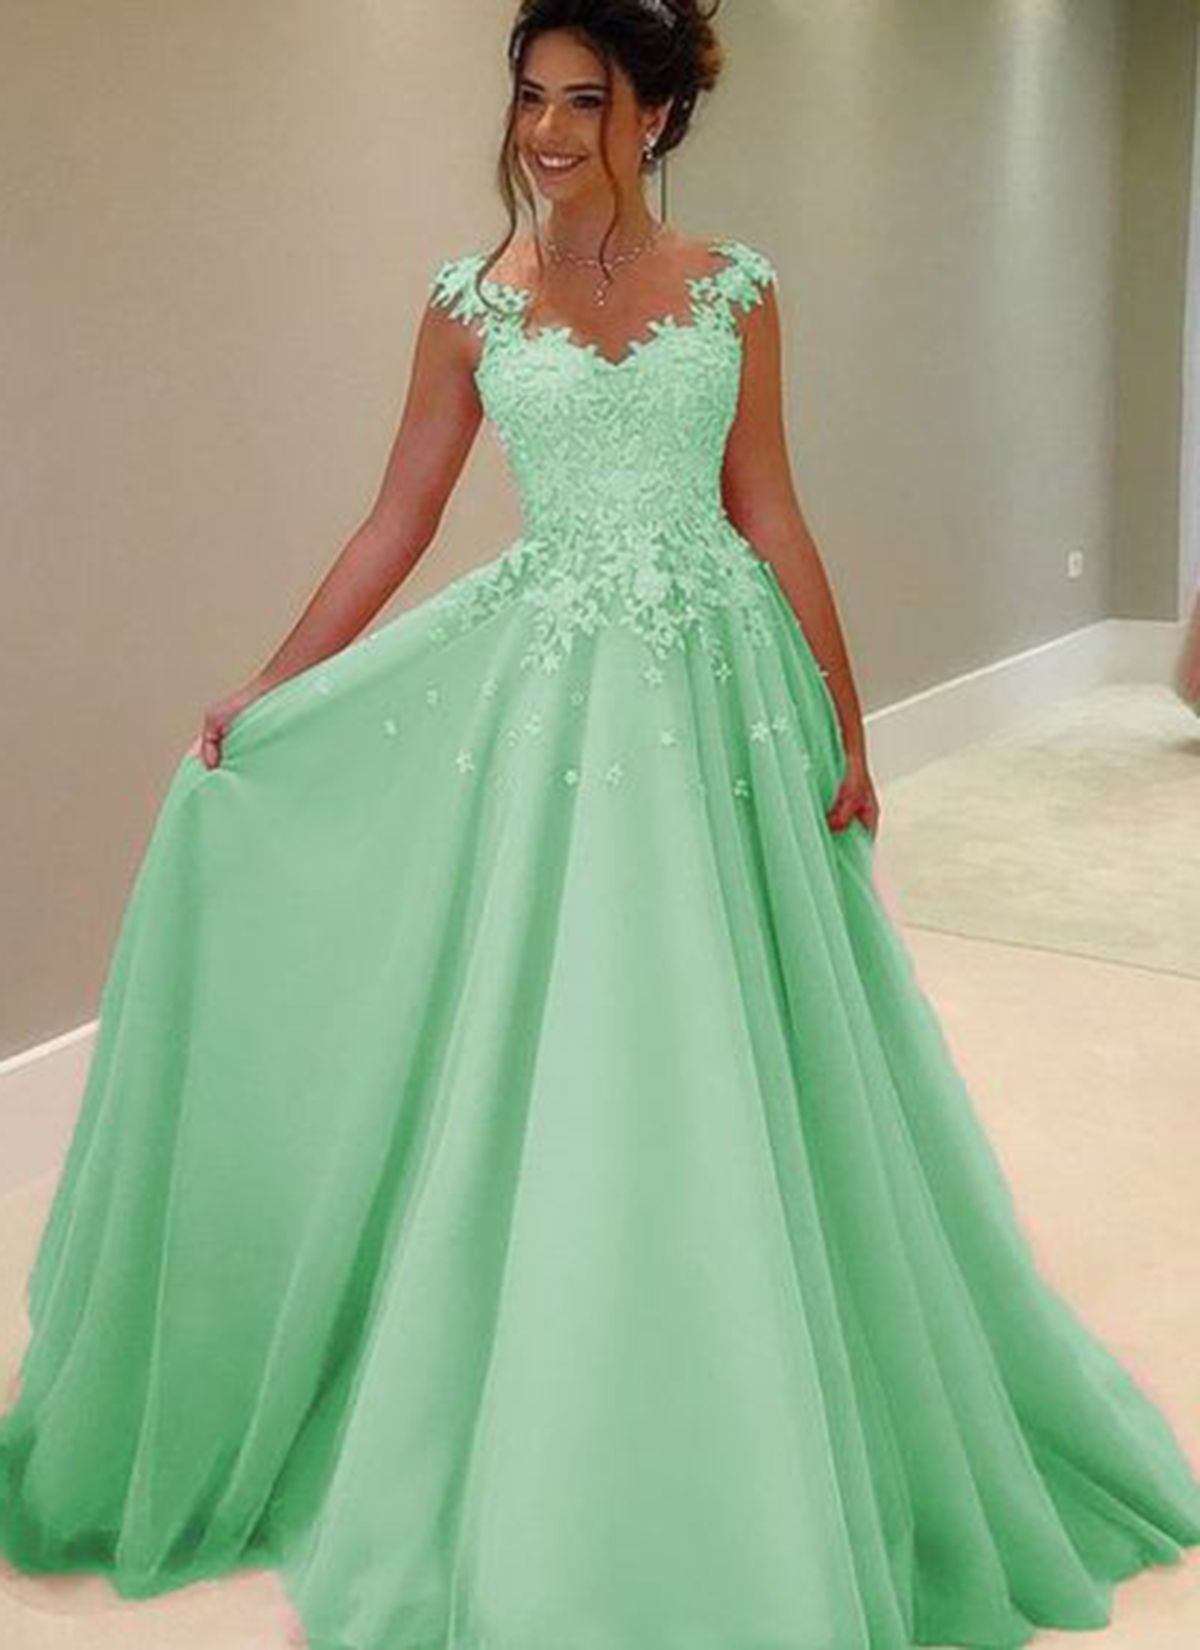 Elegant champagne tulle o neck long formal prom dress with white